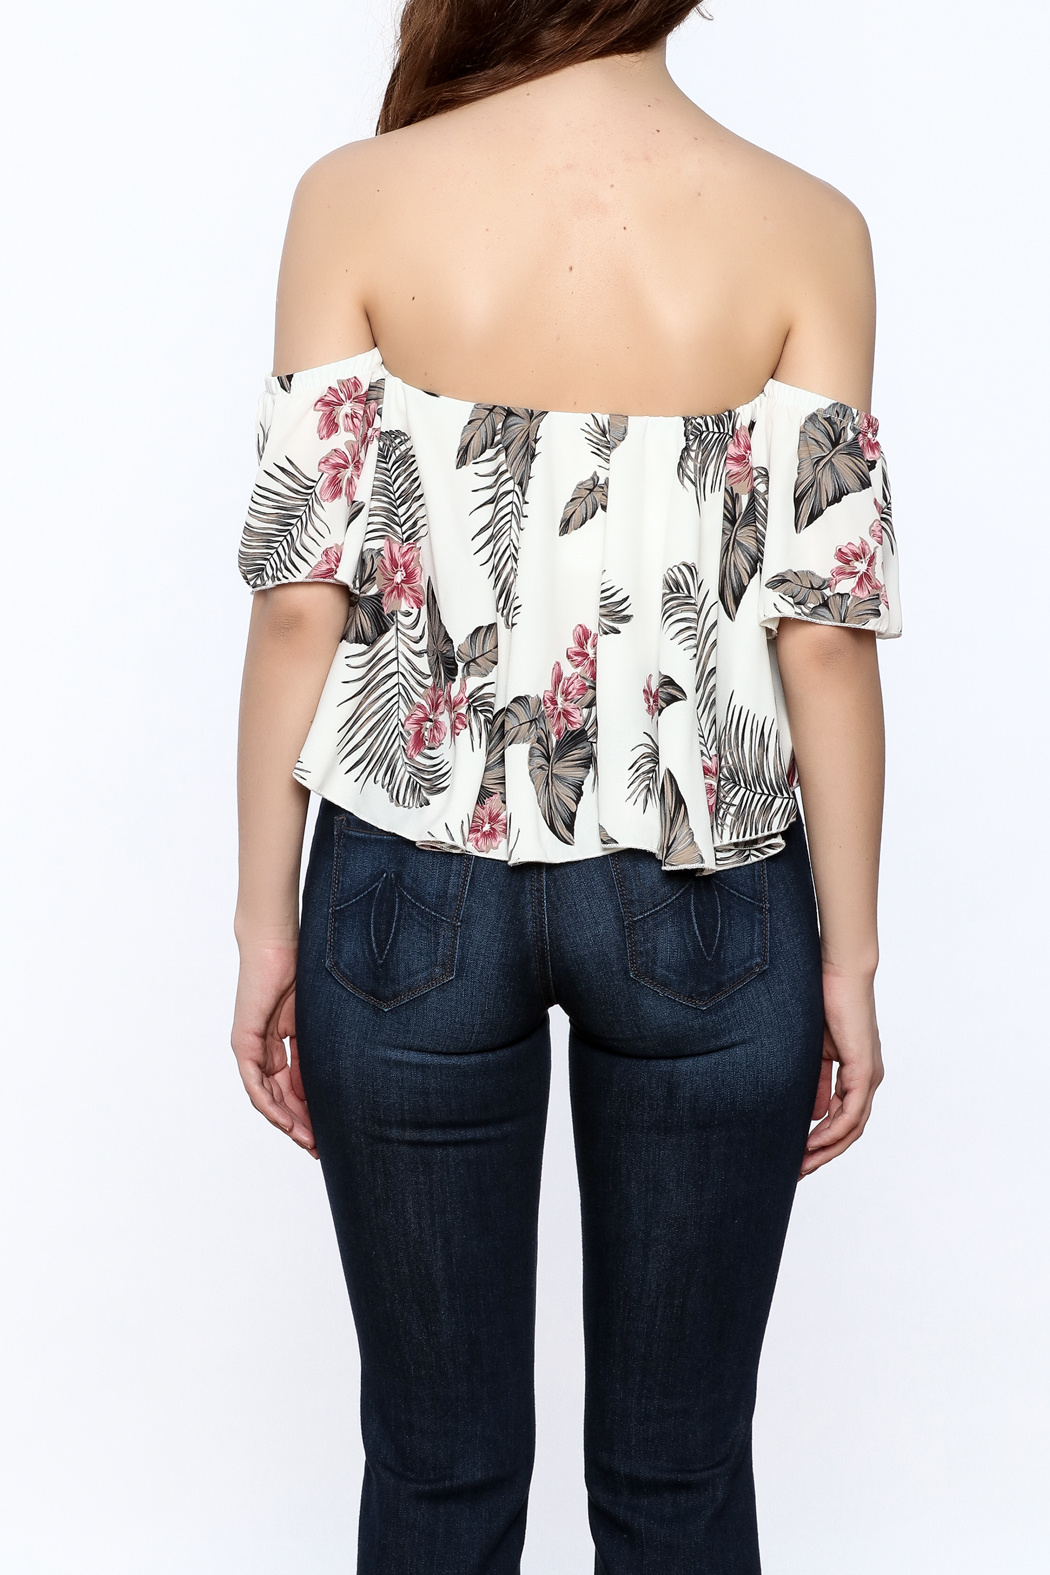 Jella Couture Leaf Print Crop Top - Back Cropped Image